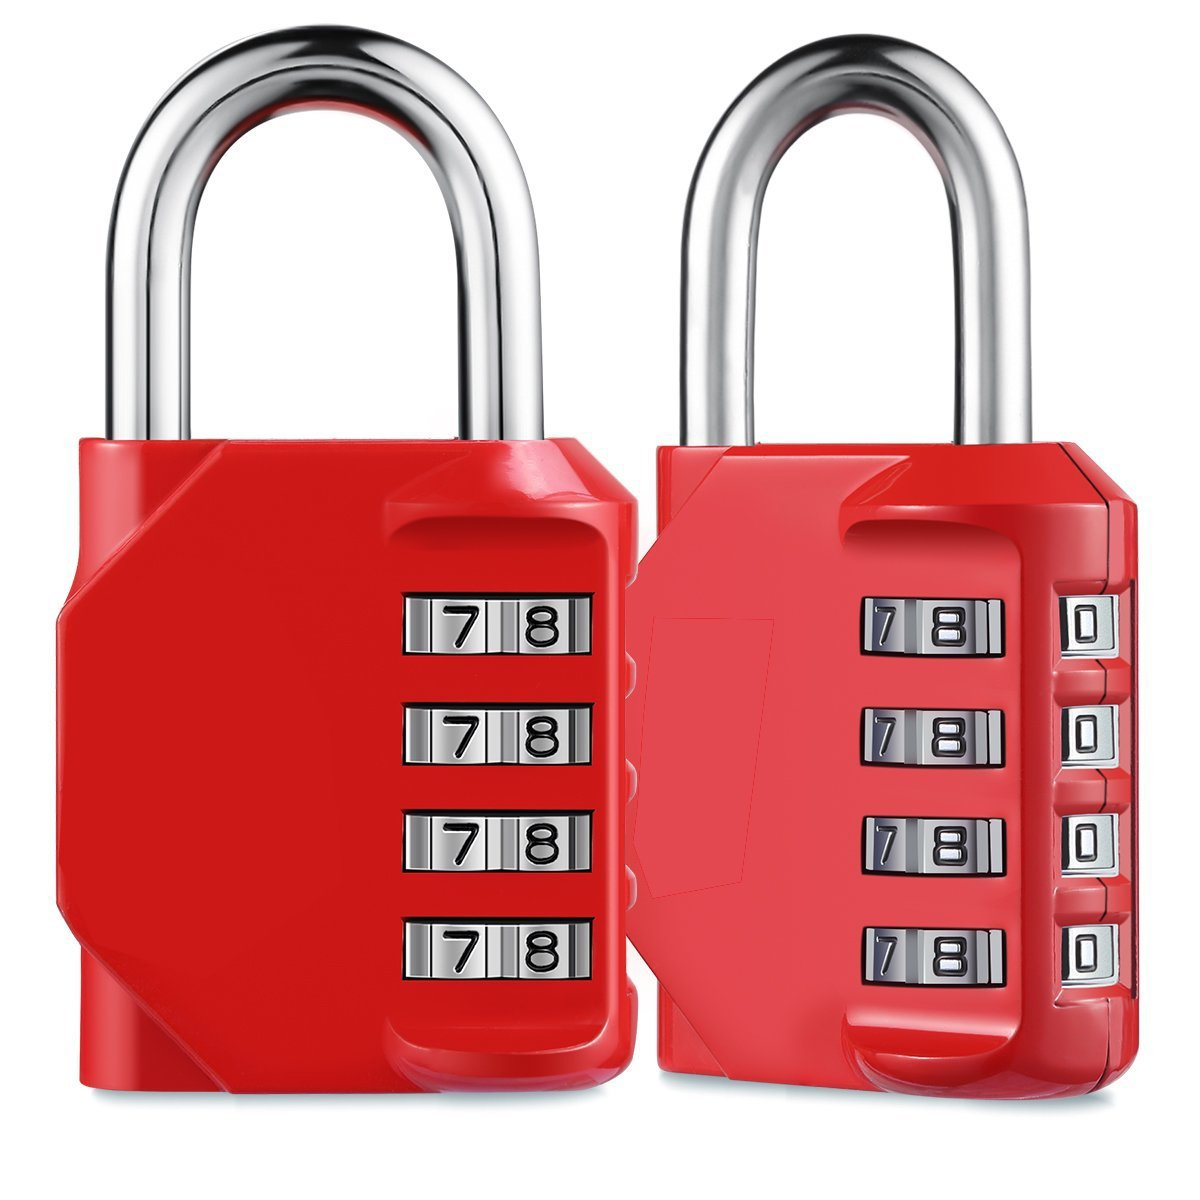 AIZESI 2PCS Combination Padlock, 4 Digit Combination Lock Outdoor for School Gym lockers, Zinc Alloy(RED-2PCS)